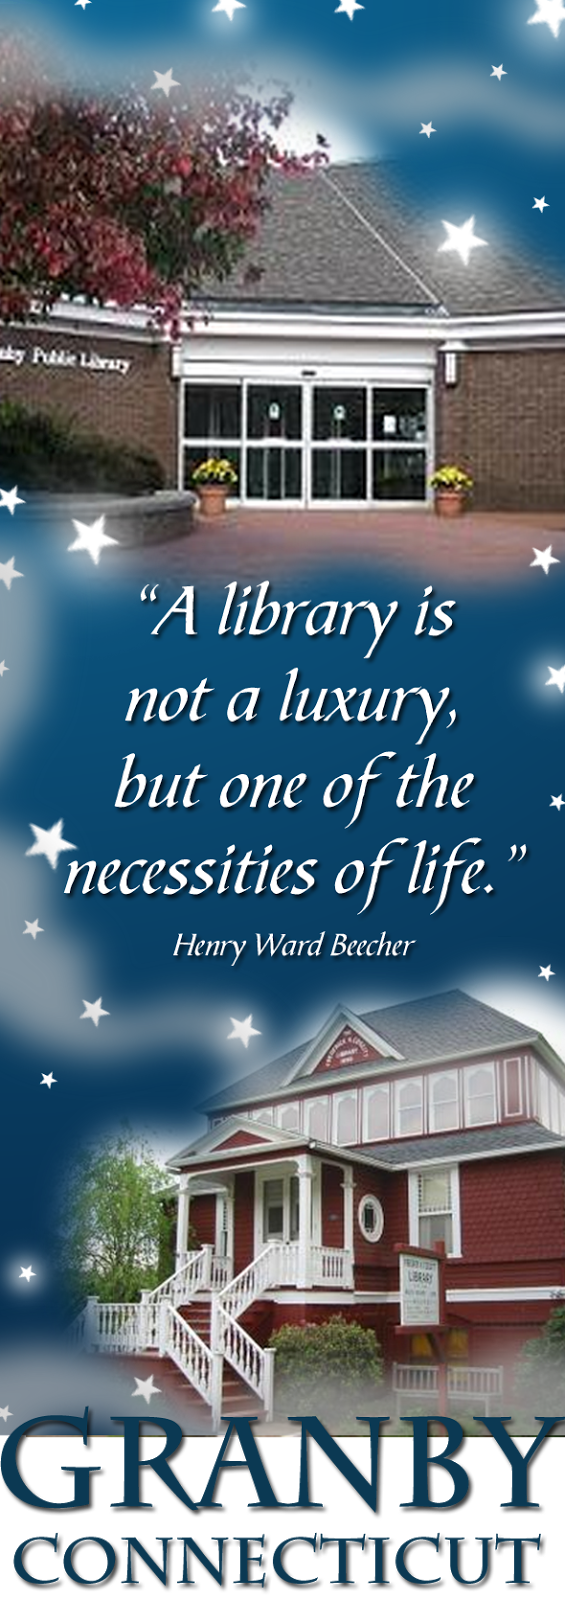 I ♥ Granby, CT Public Libraries!